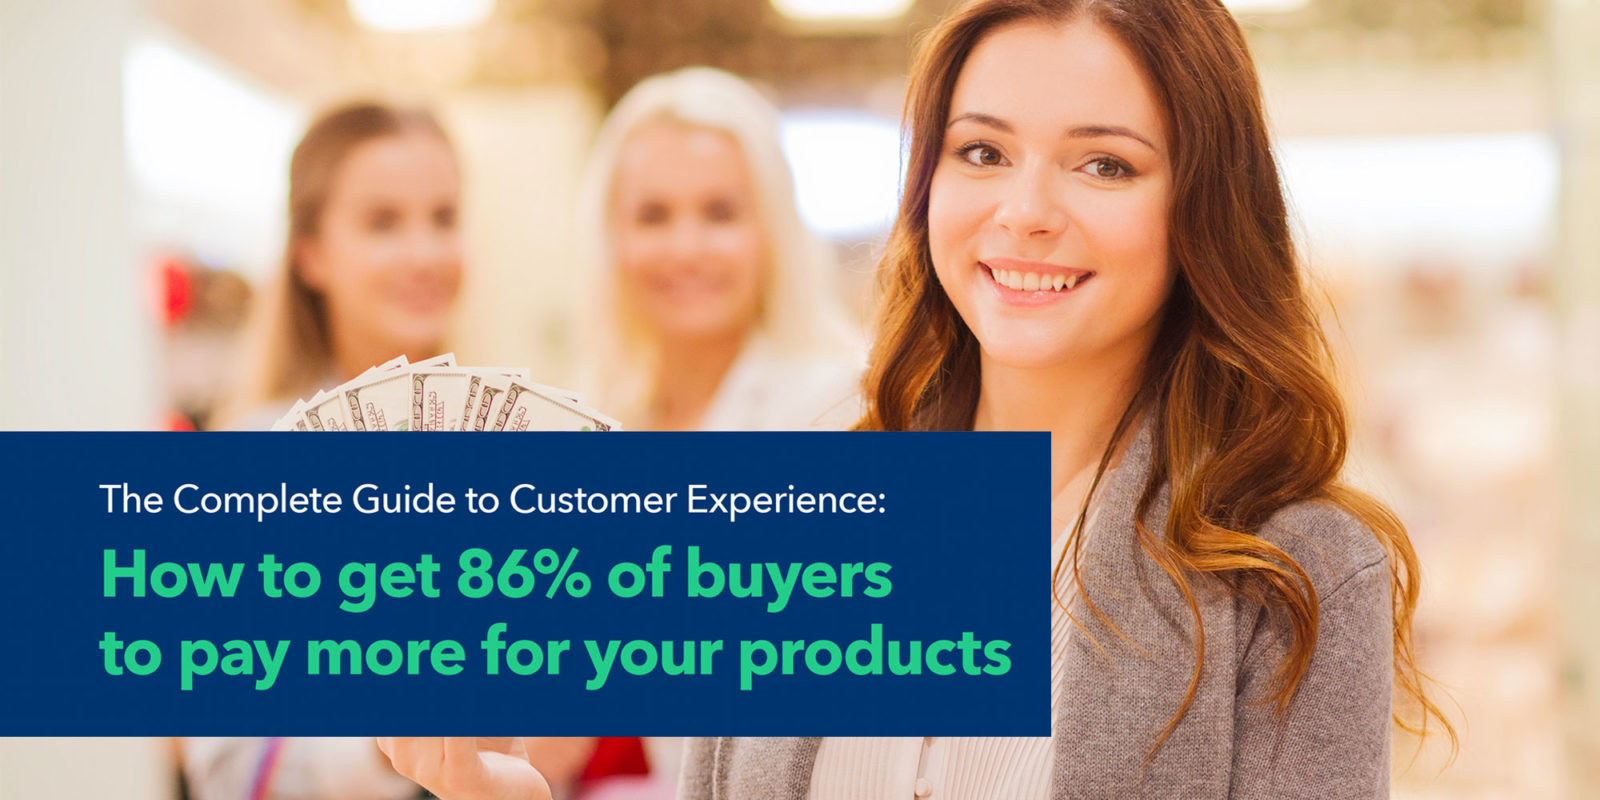 The complete guide to customer experience.